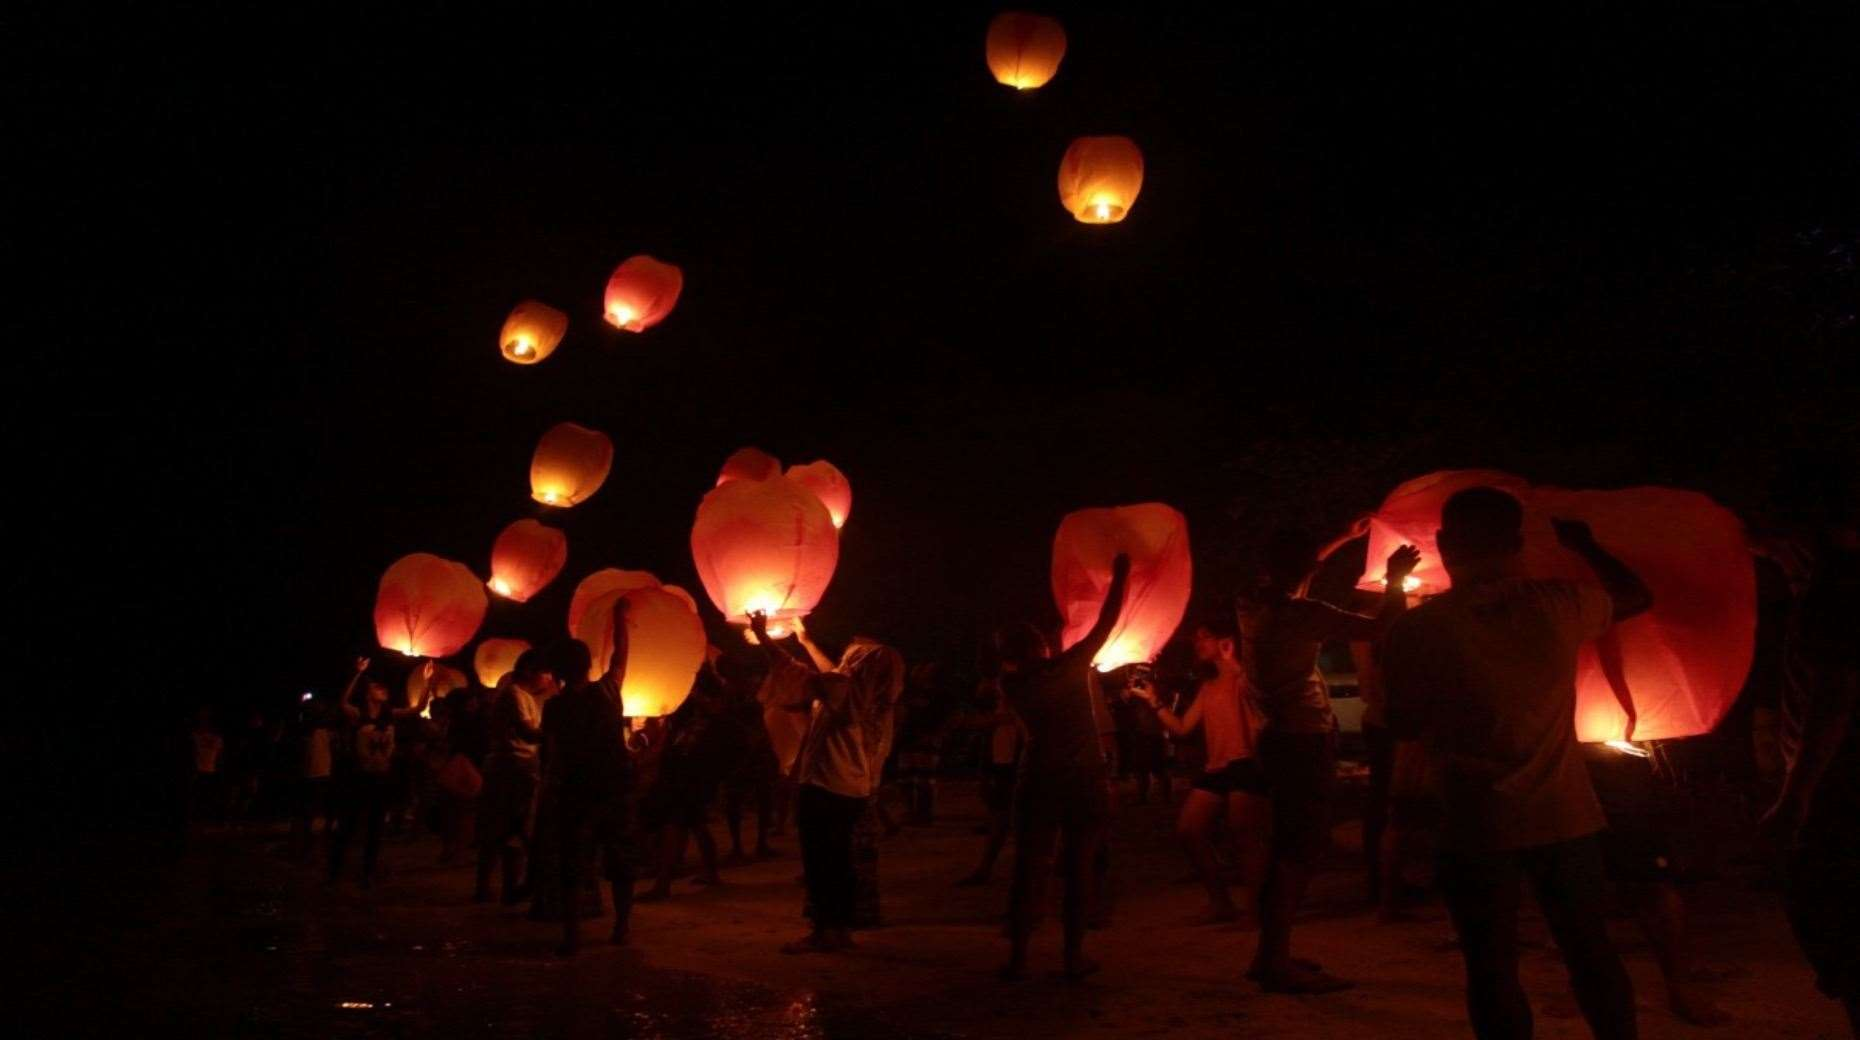 Sky lanterns are released. (31171963)